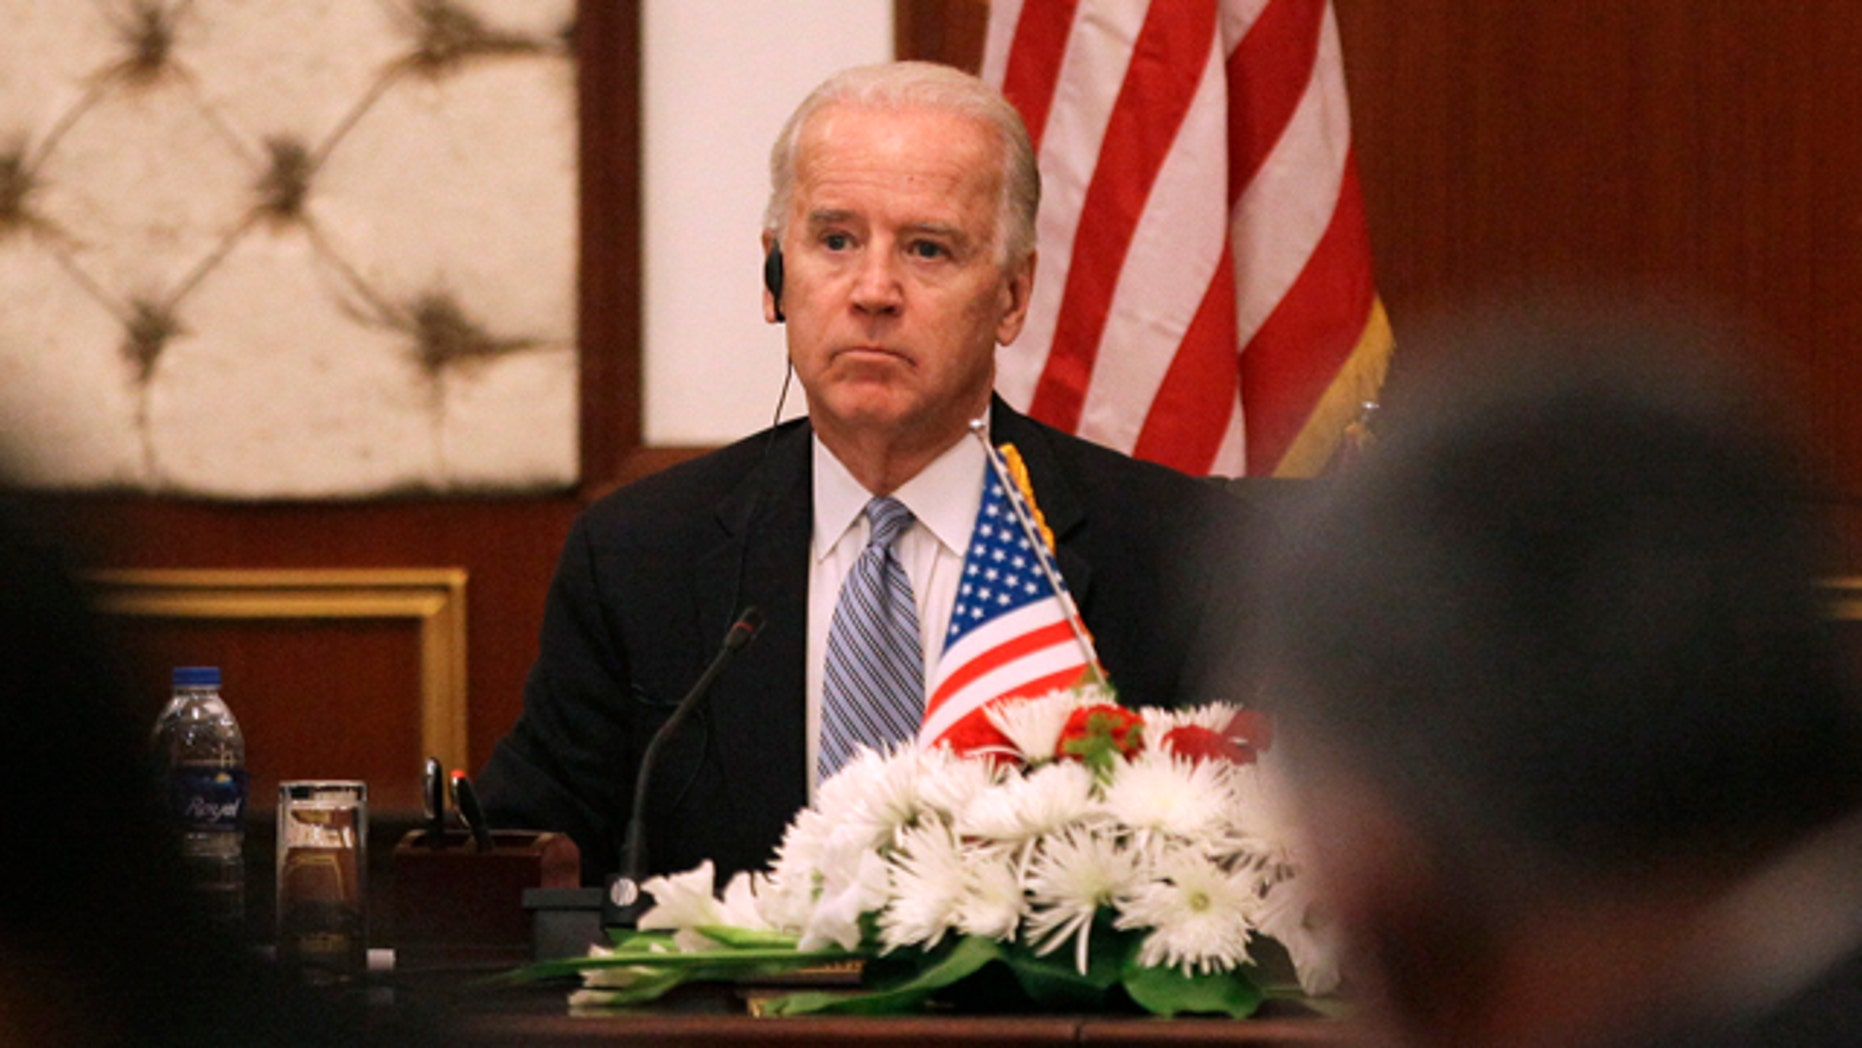 Nov. 30: U.S. Vice President Joe Biden attends a joint news conference with Iraqi prime minister in Baghdad.